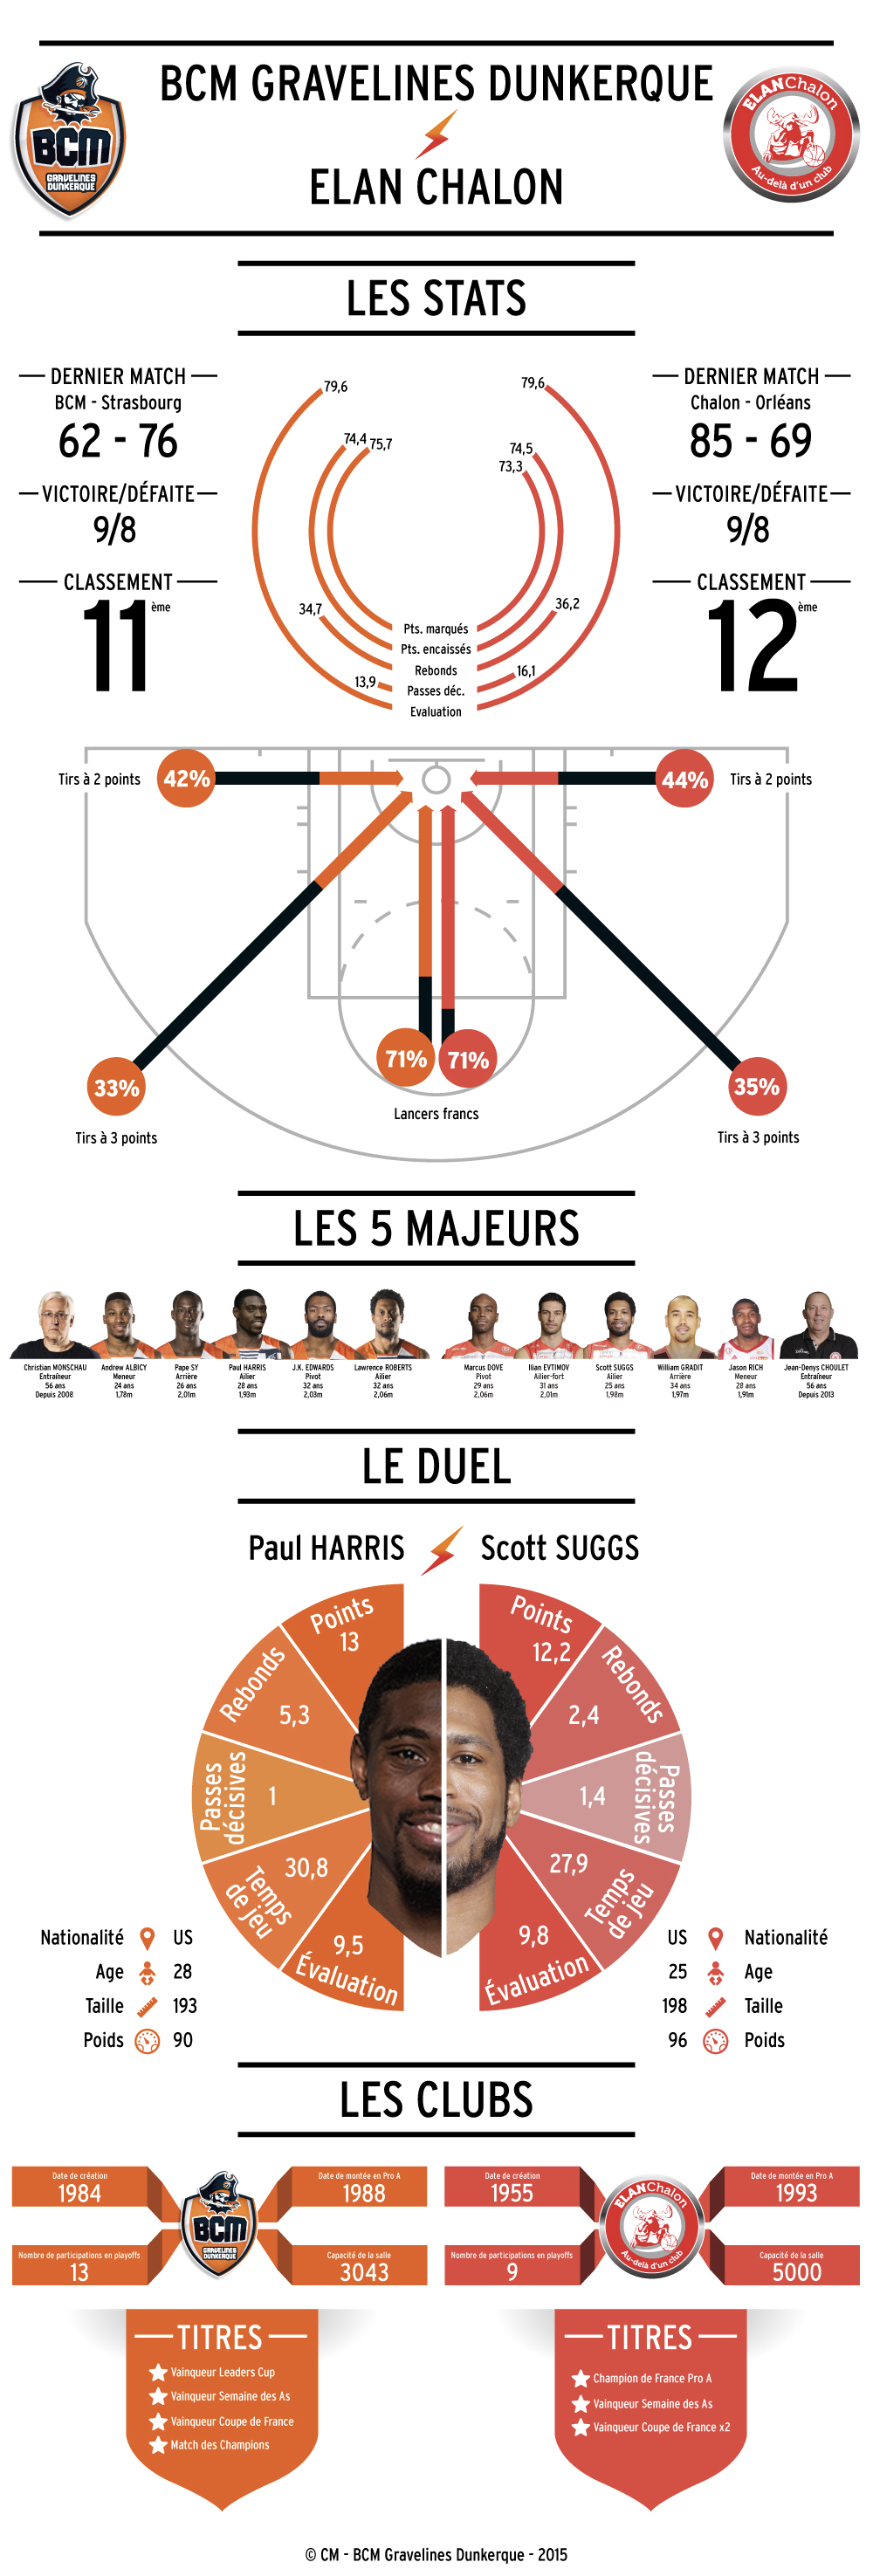 150126_INFOGRAPHIE_CHALON